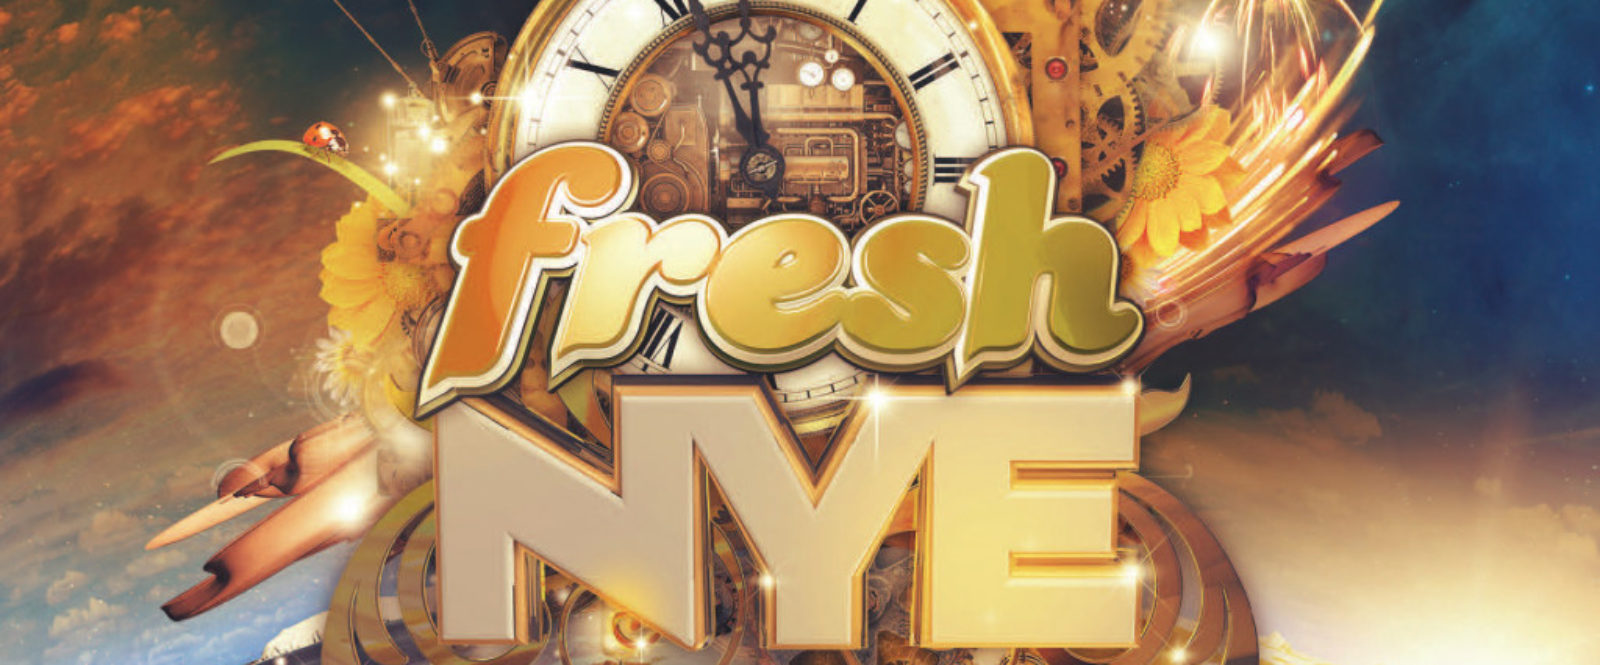 We are the #7 NYE party!